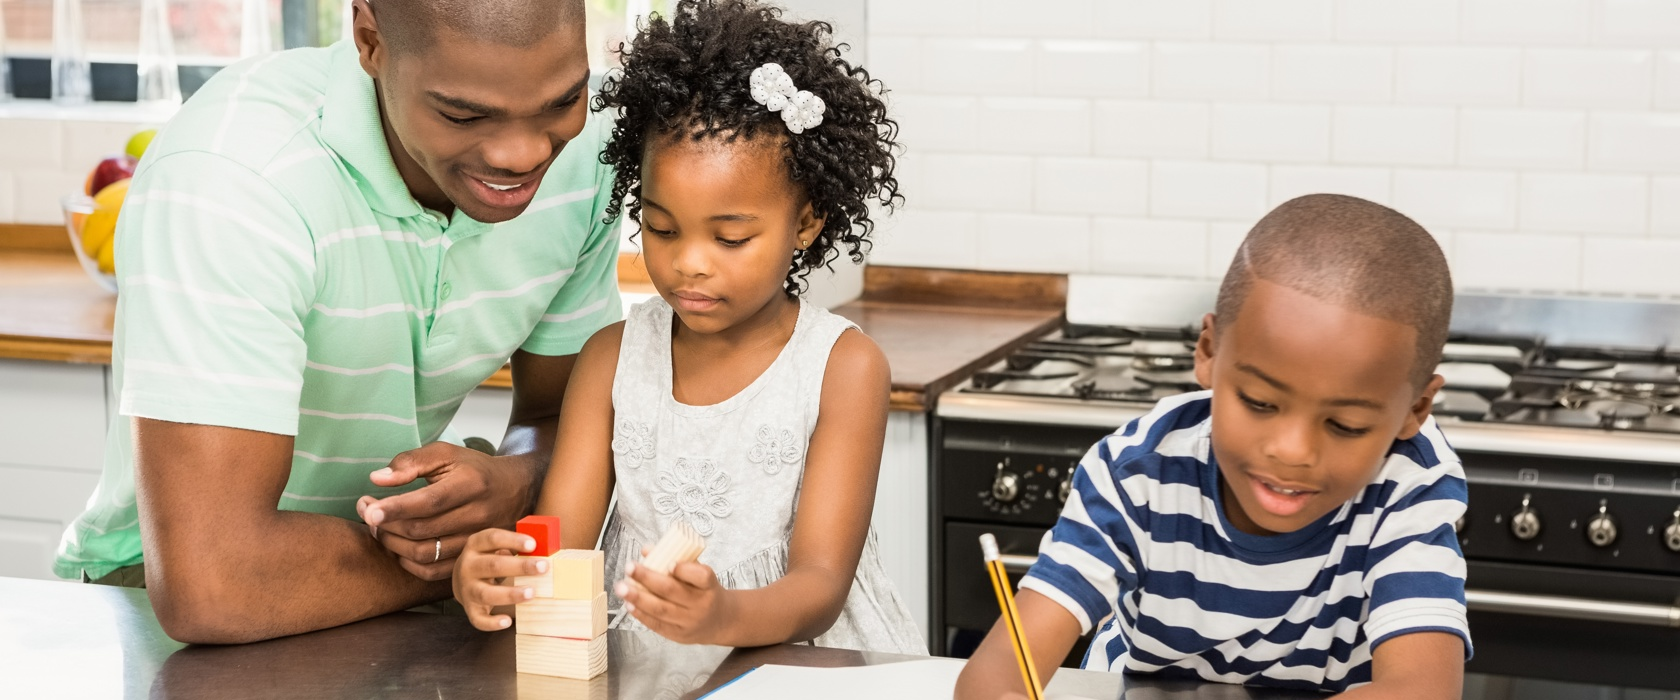 Supporting parents and families to enjoy science as part of everyday life